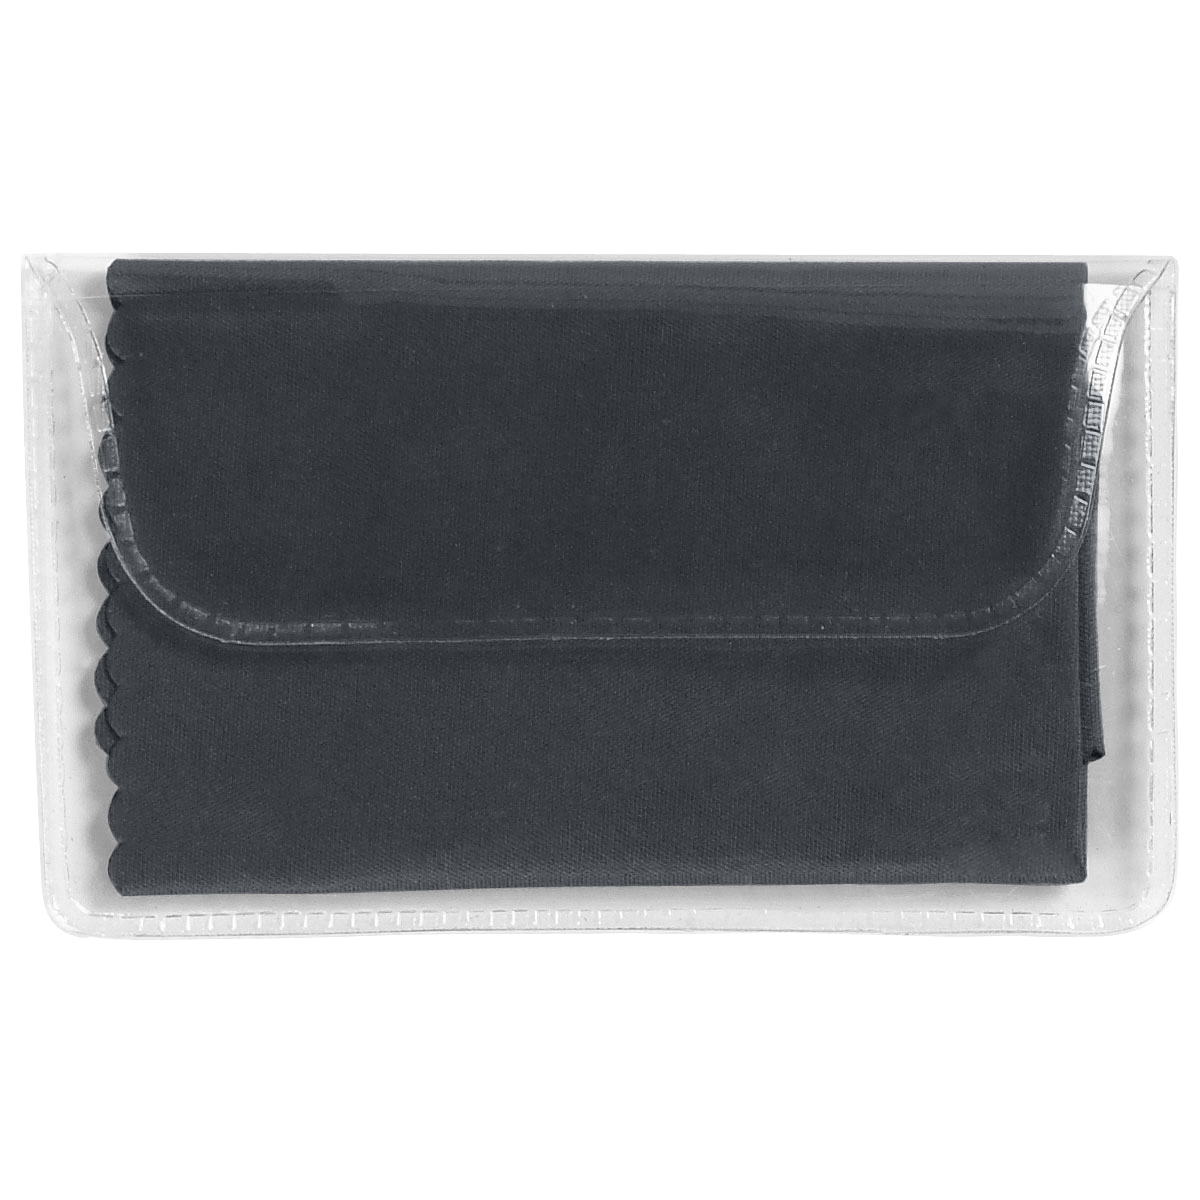 Black Microfiber Cleaning Cloth In Case